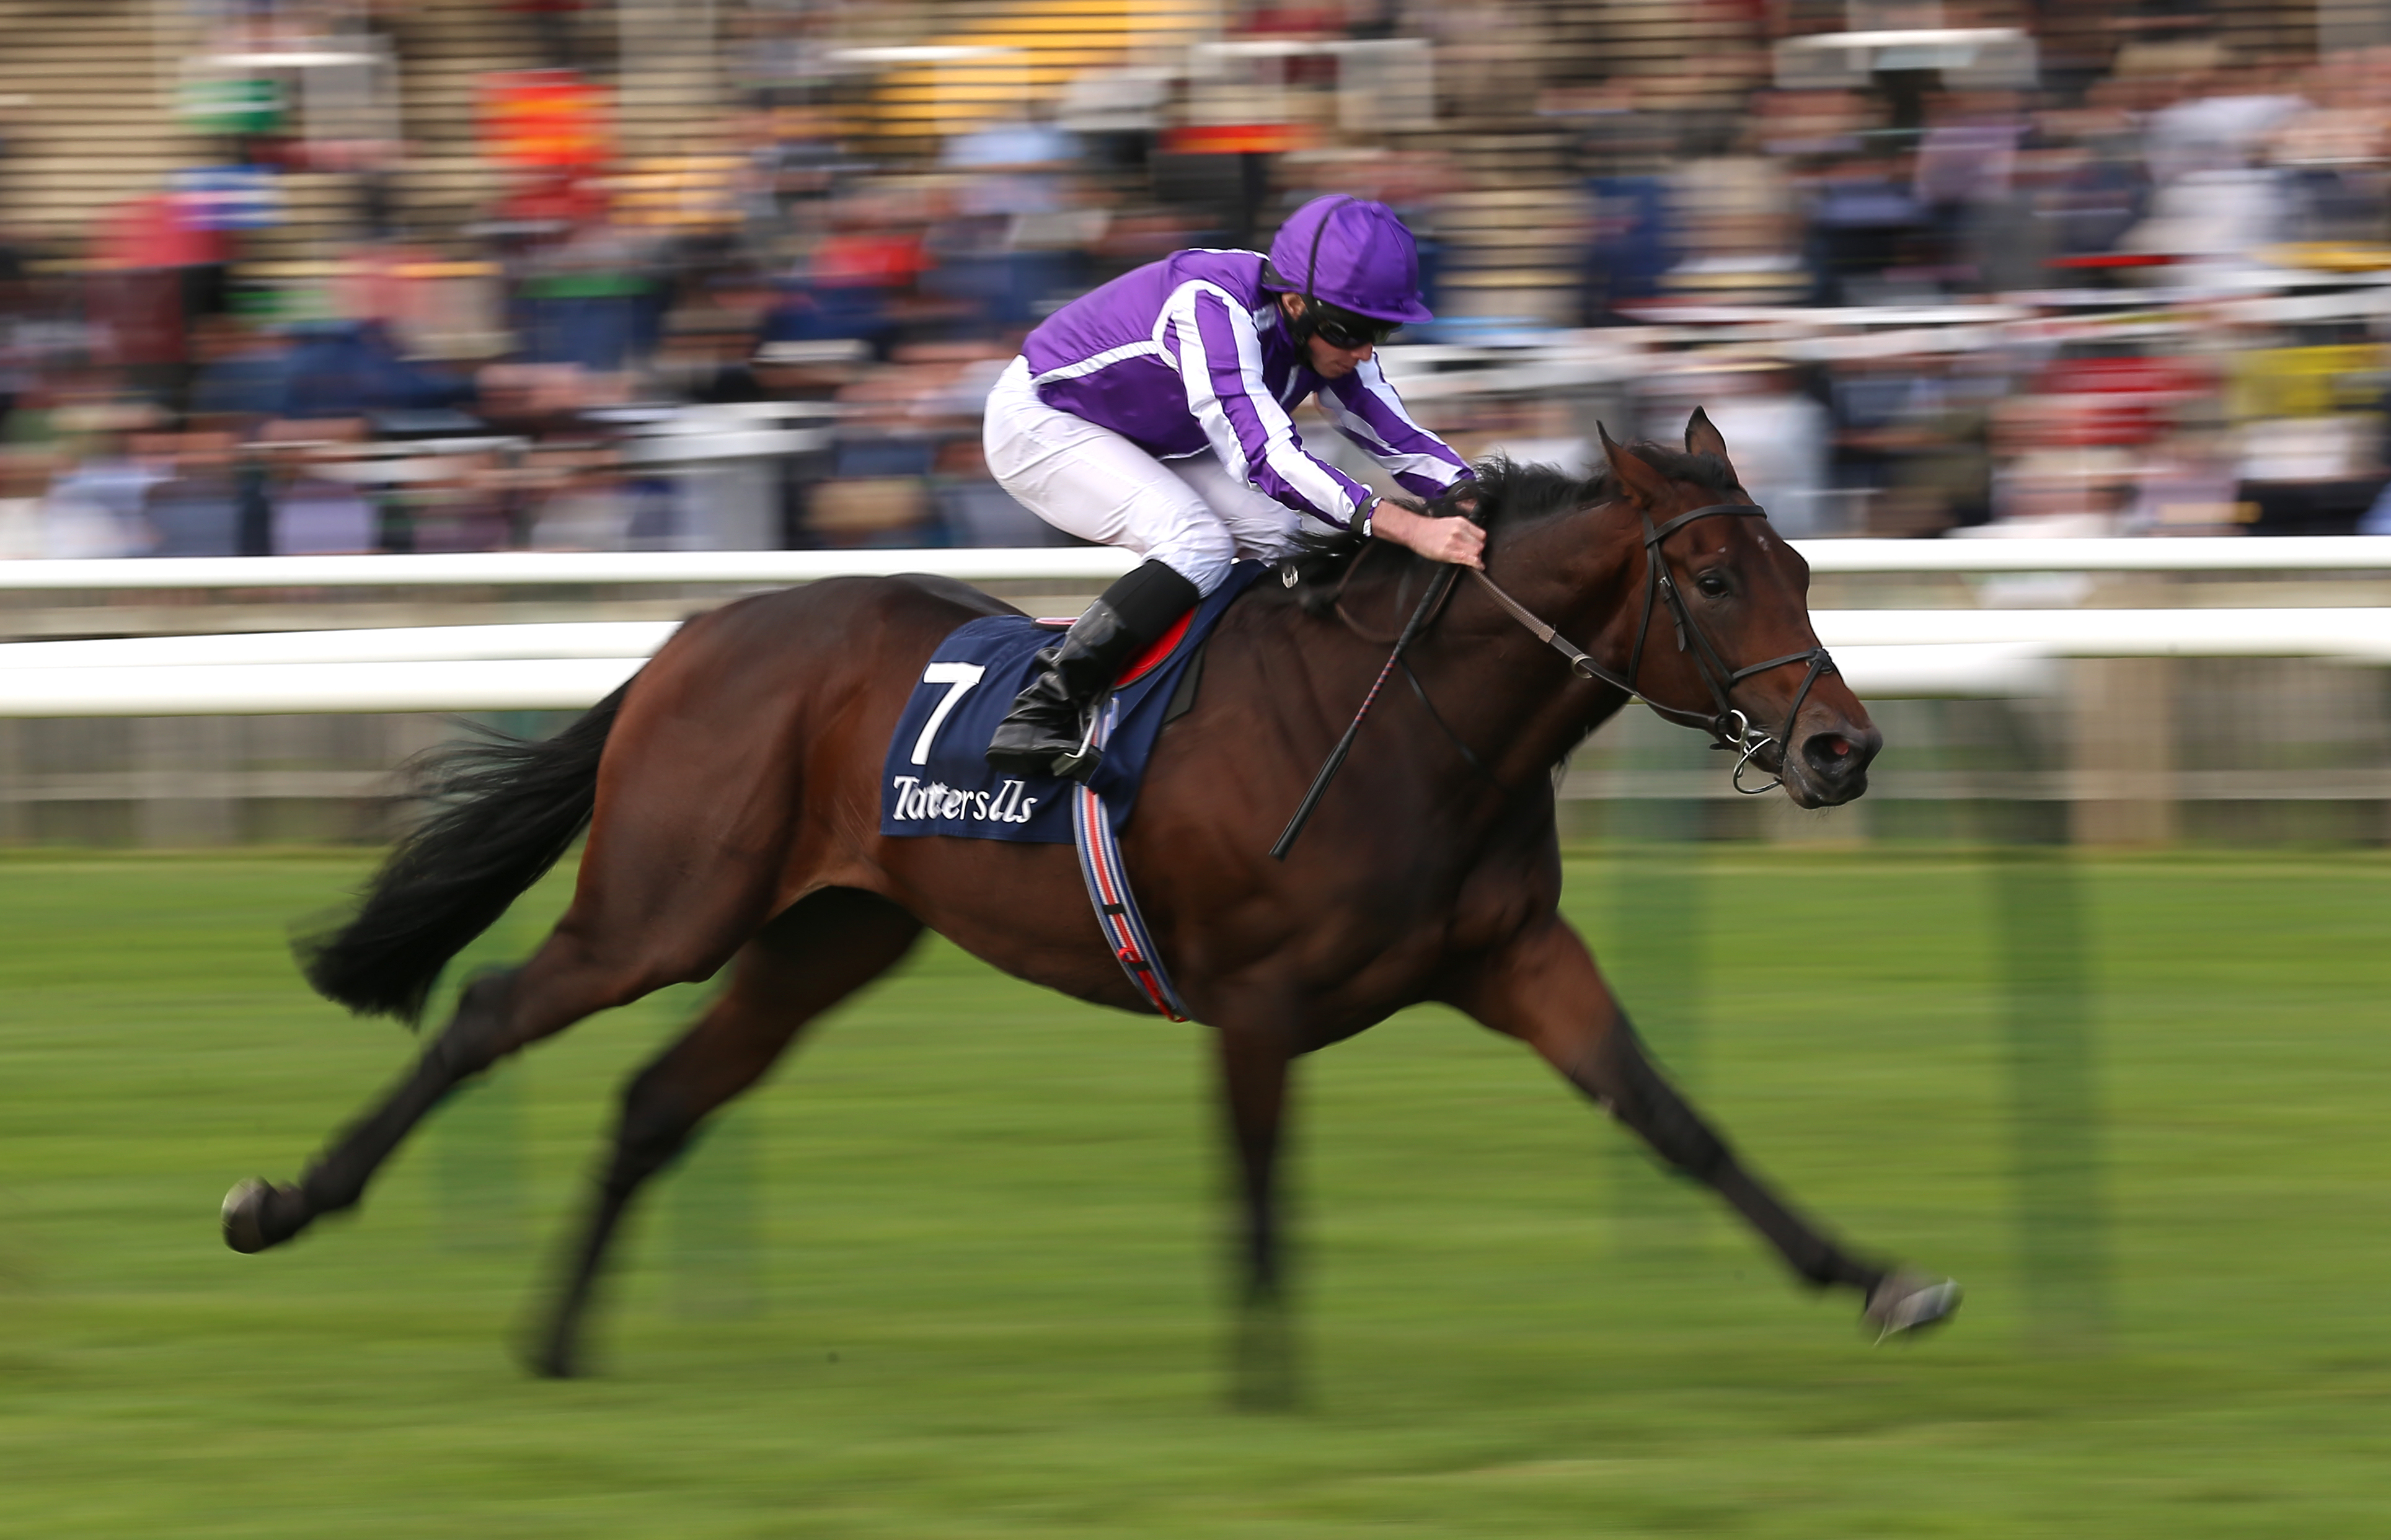 Wichita was an impressive winner of the Tattersalls Stakes at Newmarket